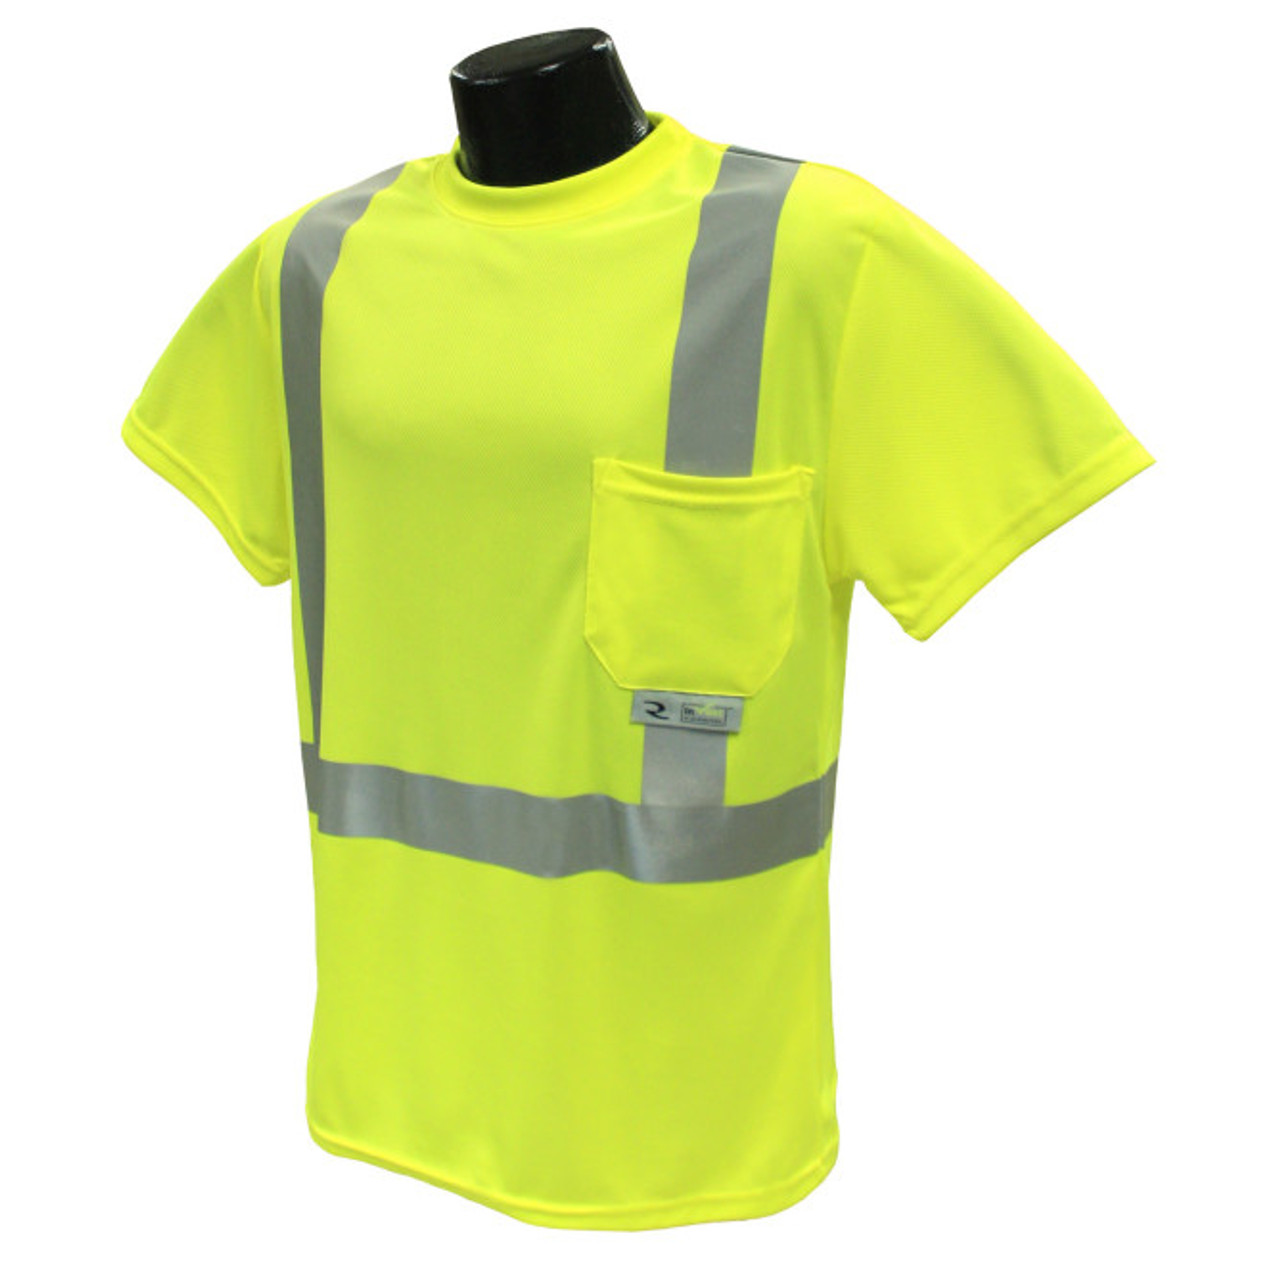 Class 2 High Visibility Safety T-Shirt with Max-Dri ST11-2 | Safety Green ANSI rated Safety Shirt | Class 2 Pocket TShirt |